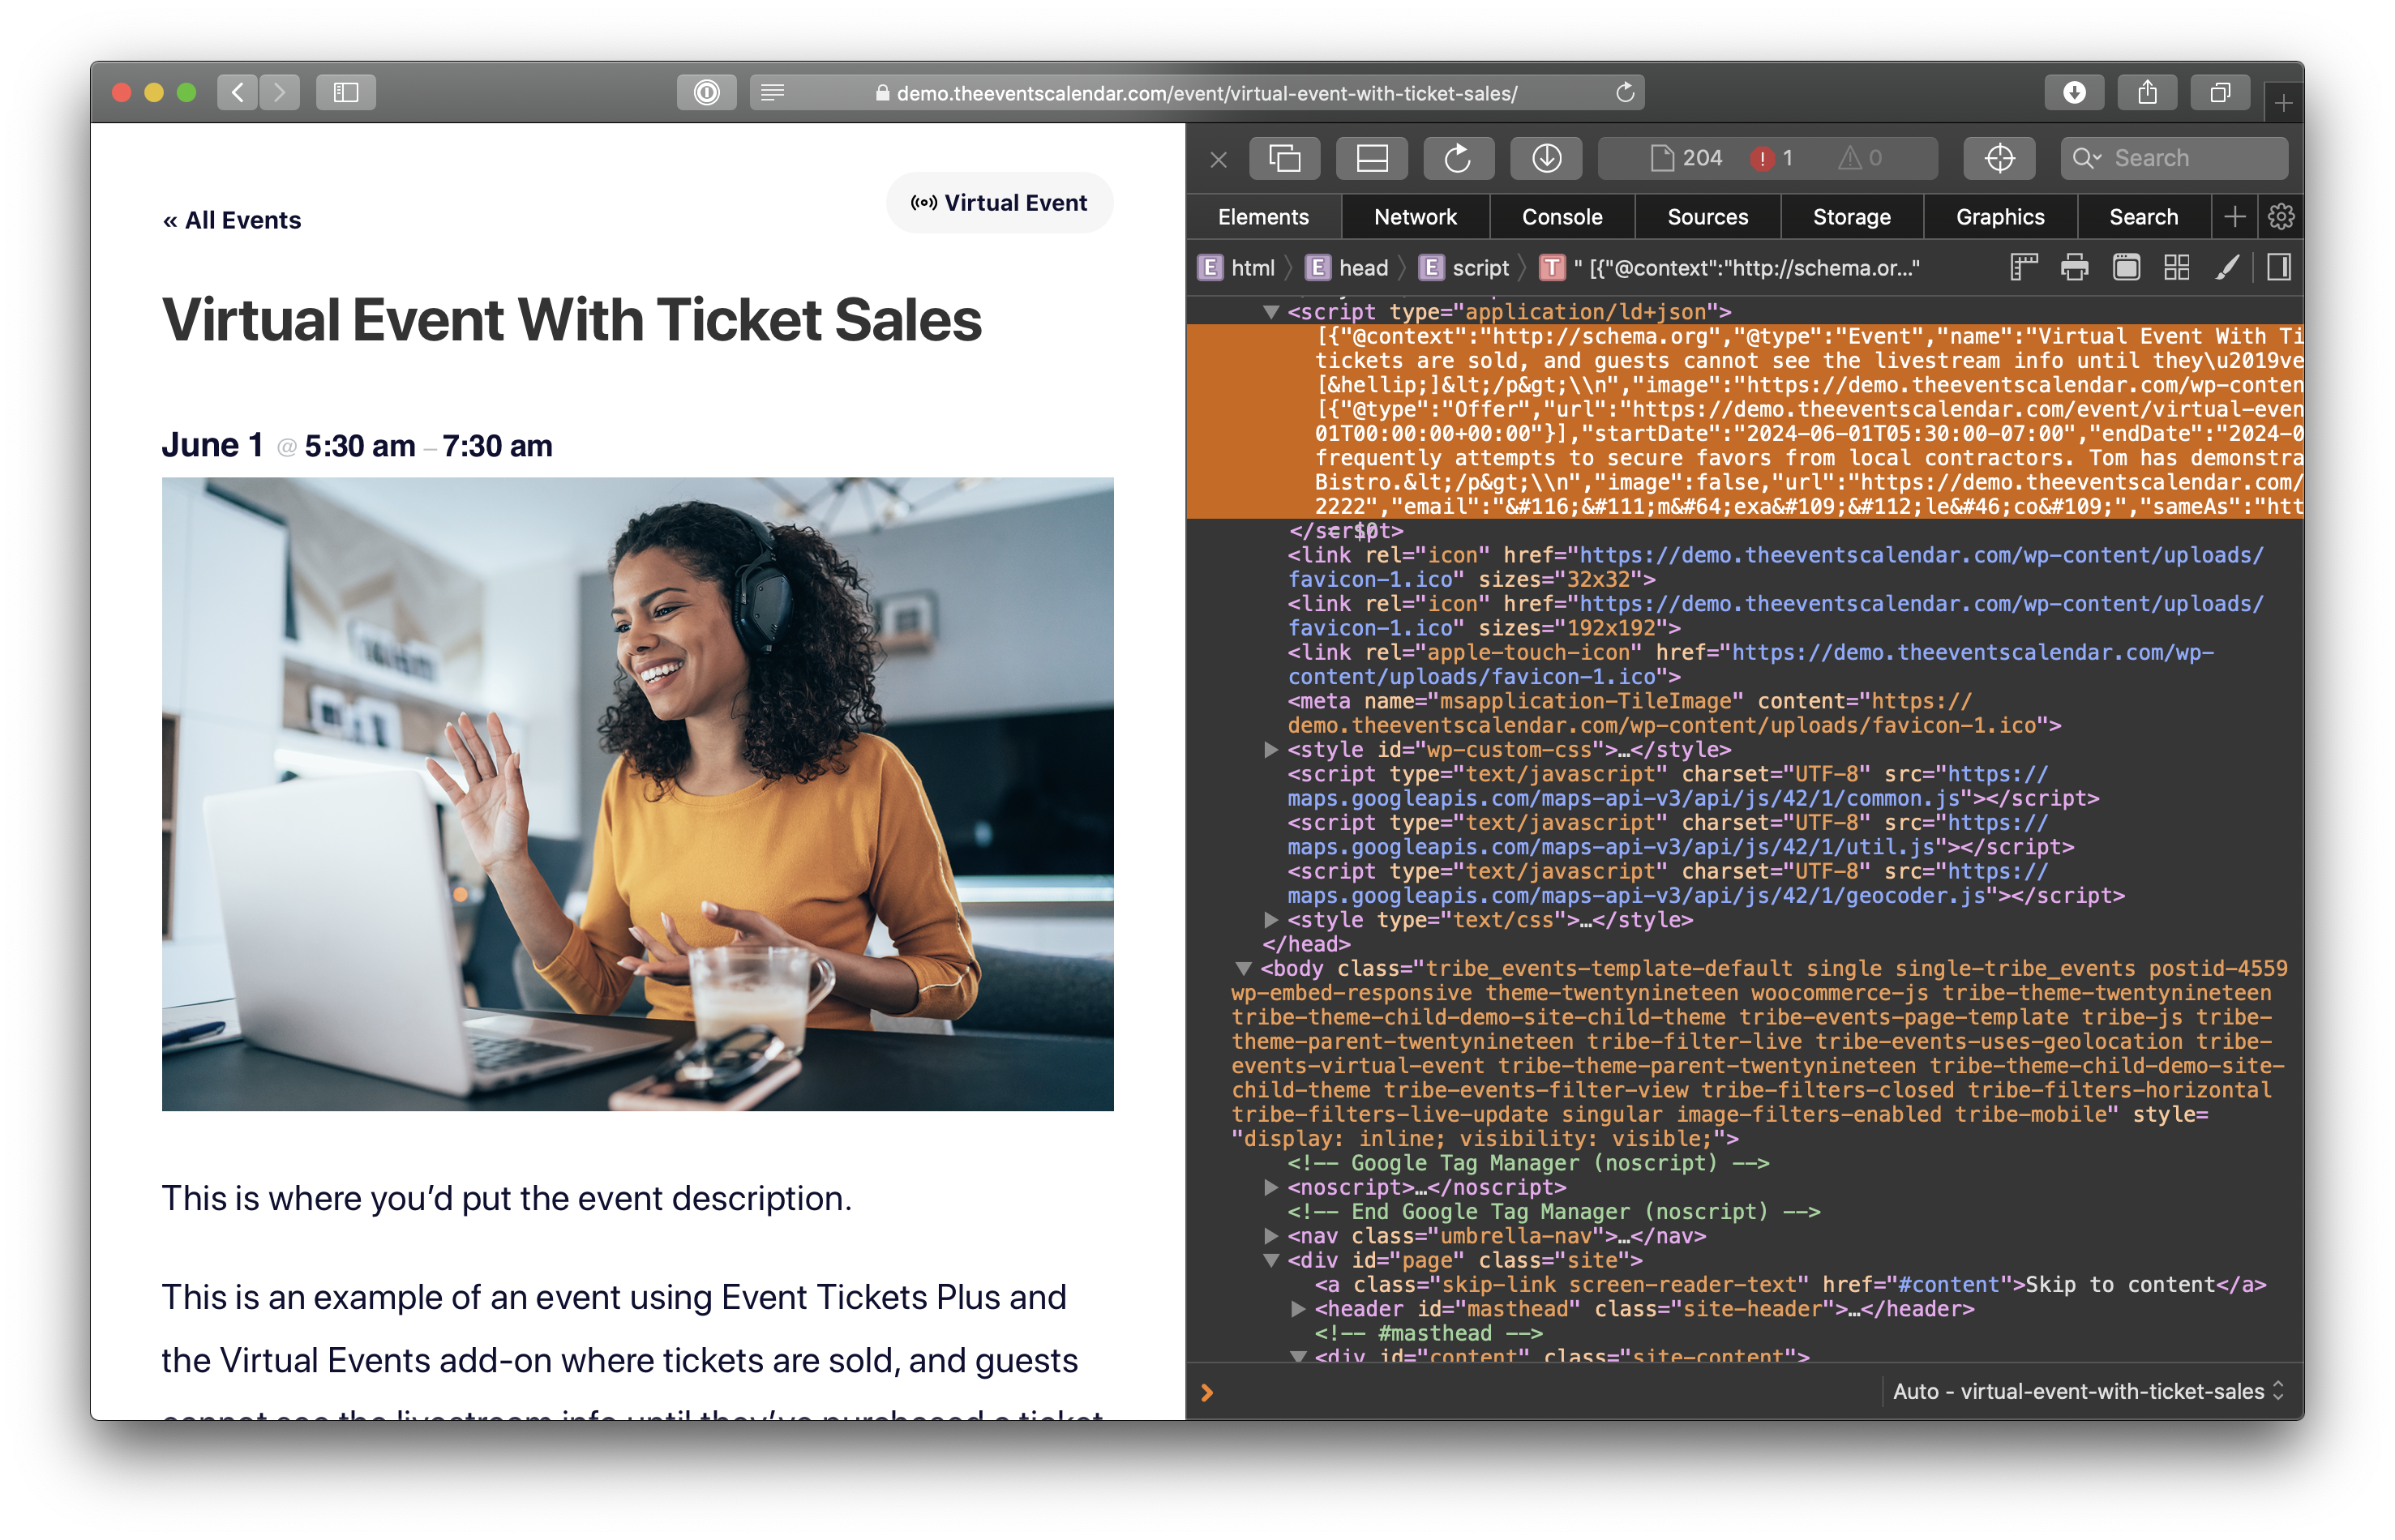 Showing a browser window with DevTools open where the event is shown on the left and the JSON-LD code is highlighted in orange on the right.